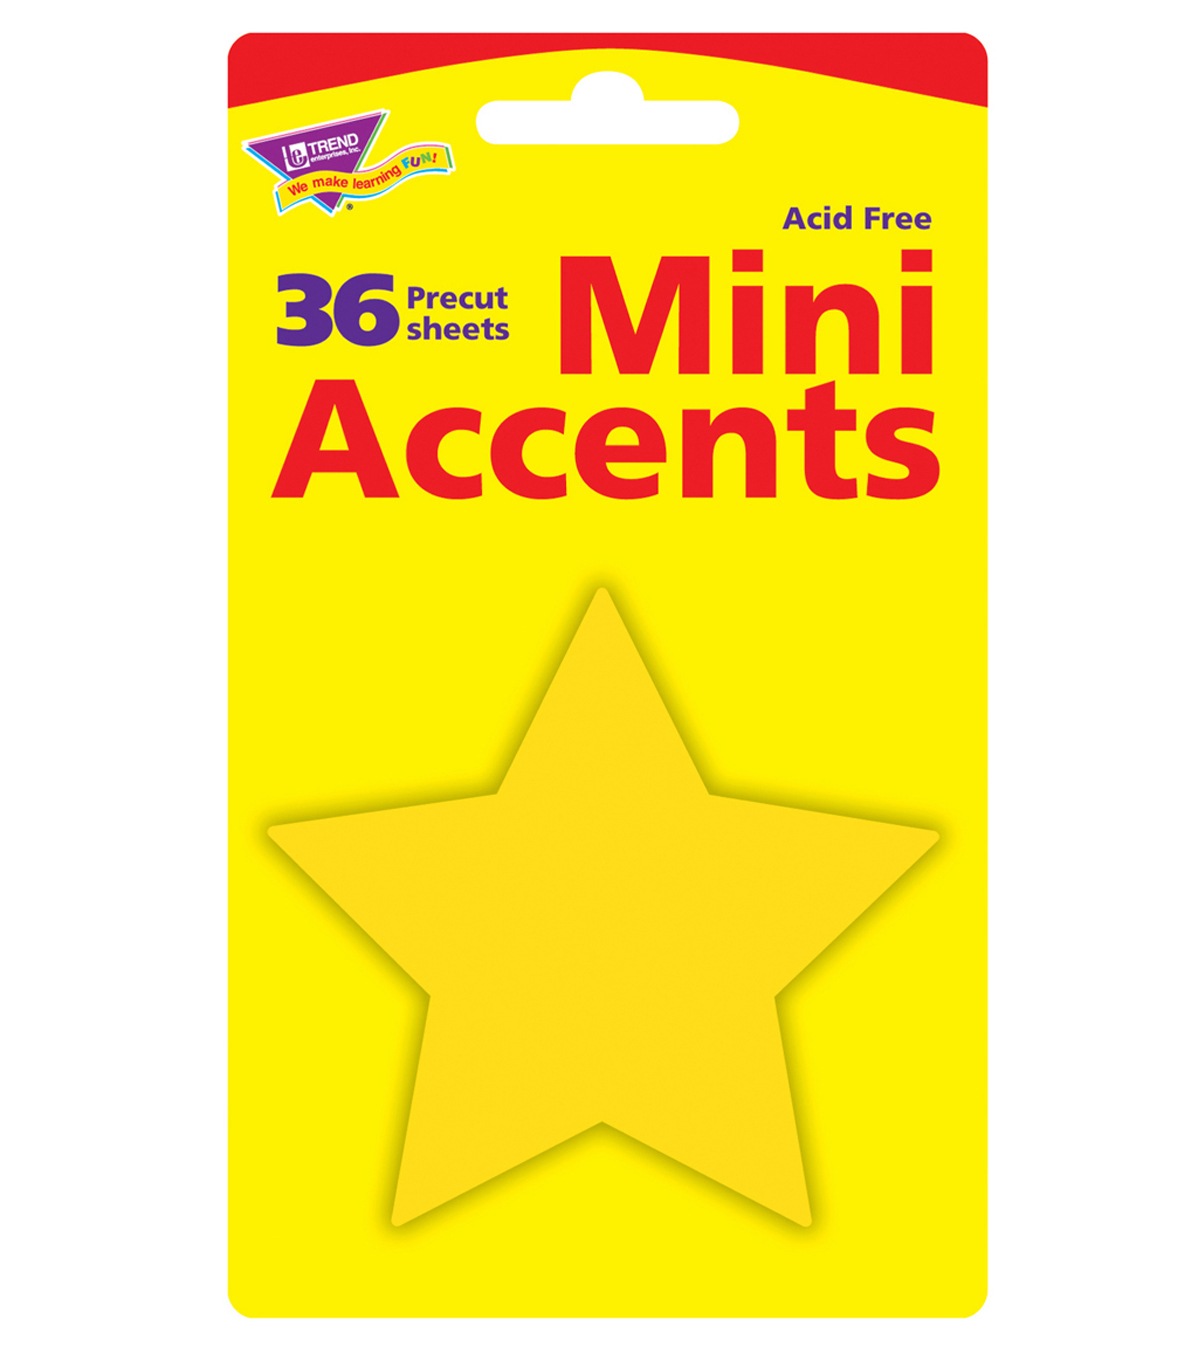 Little Star Mini Accents, 36 Per Pack, 6 Packs